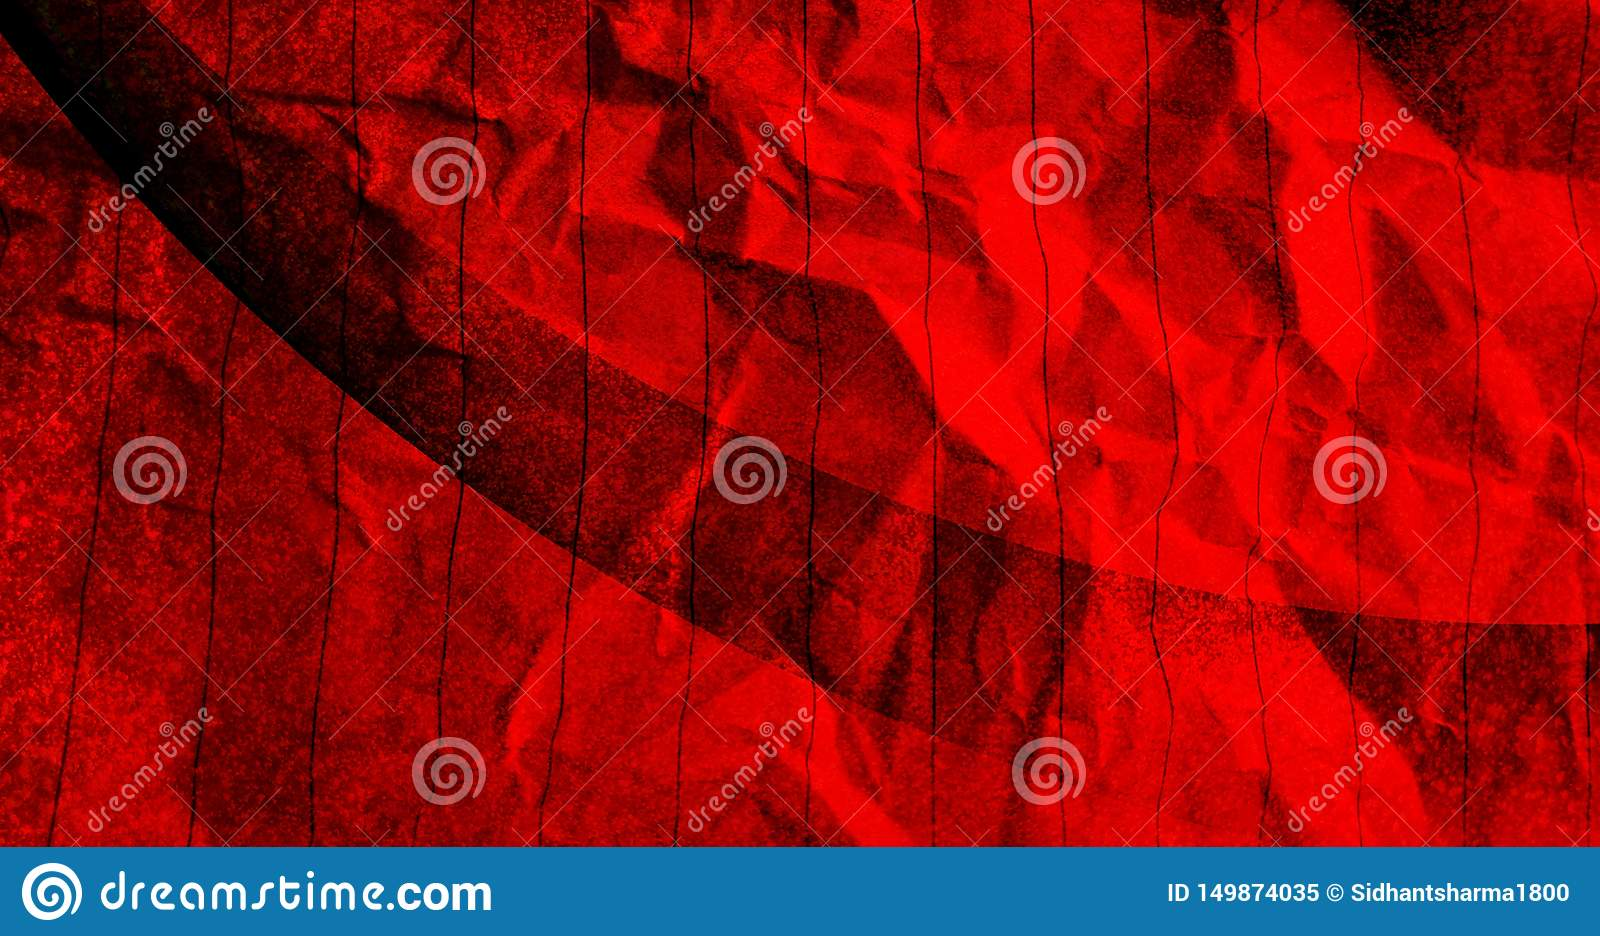 Abstract Crumpled paper red with black color mixture effects with texture background.